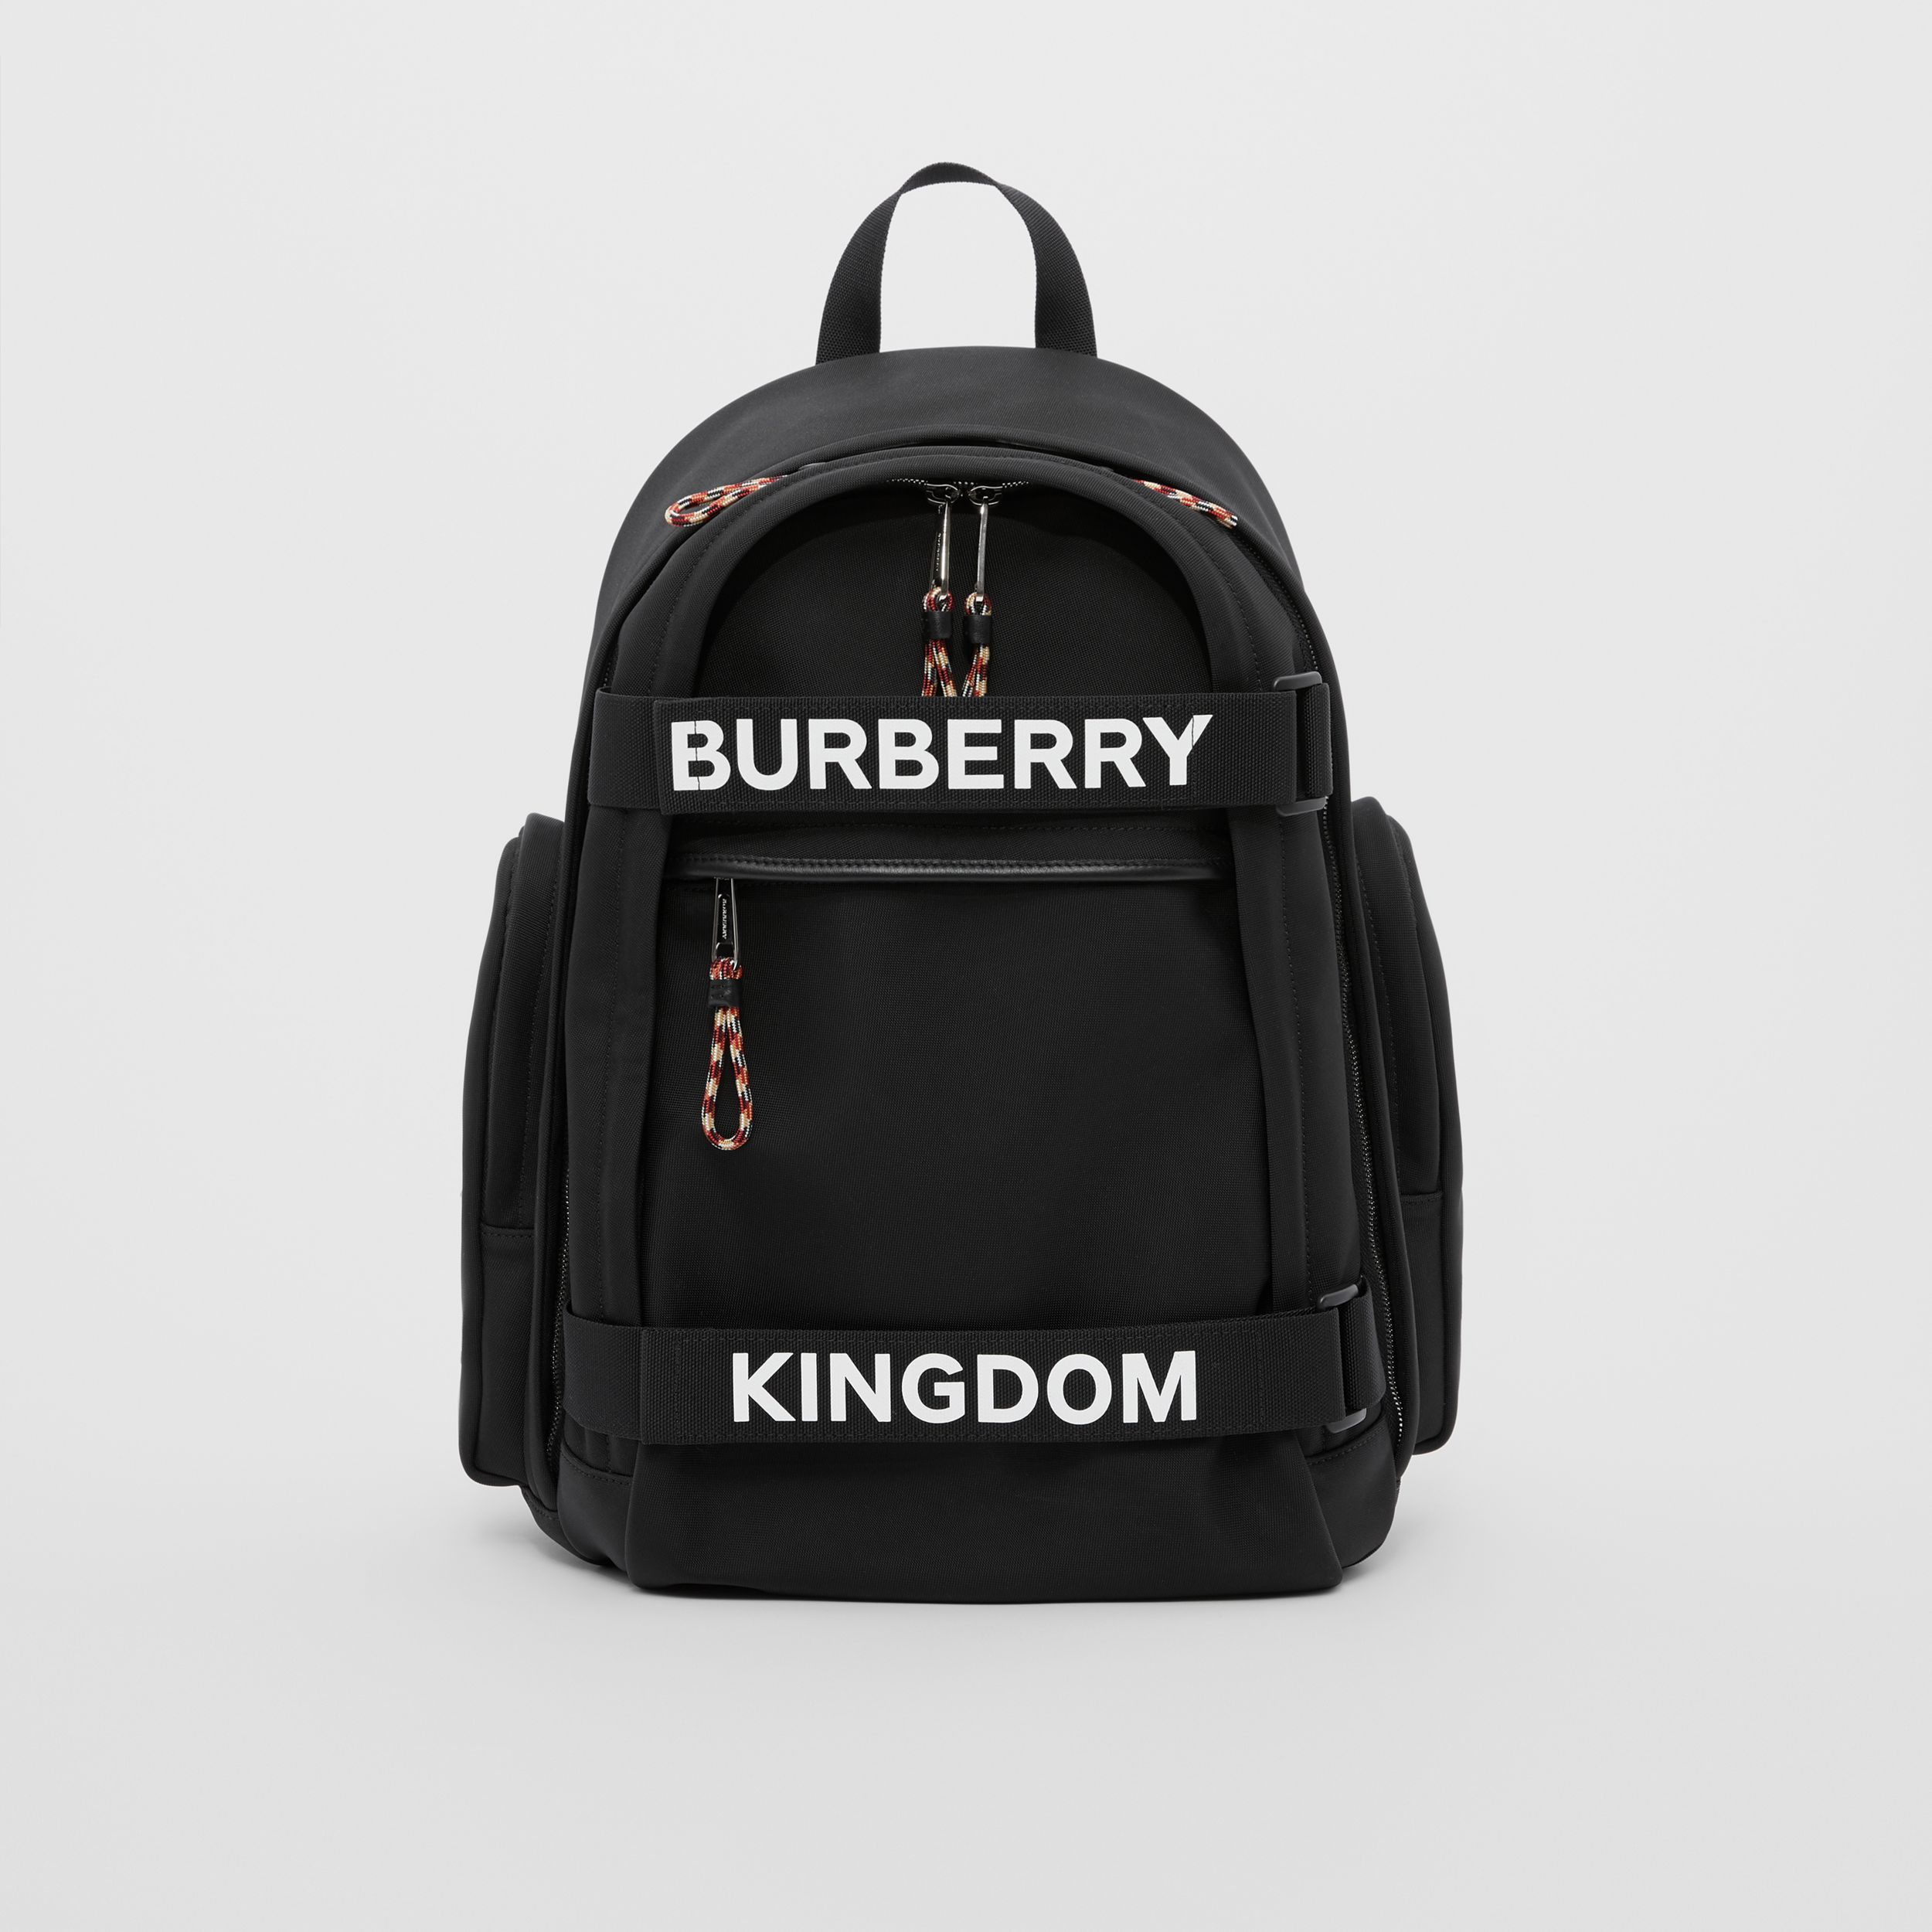 Large Logo and Kingdom Detail Nevis Backpack in Black/white | Burberry - 1